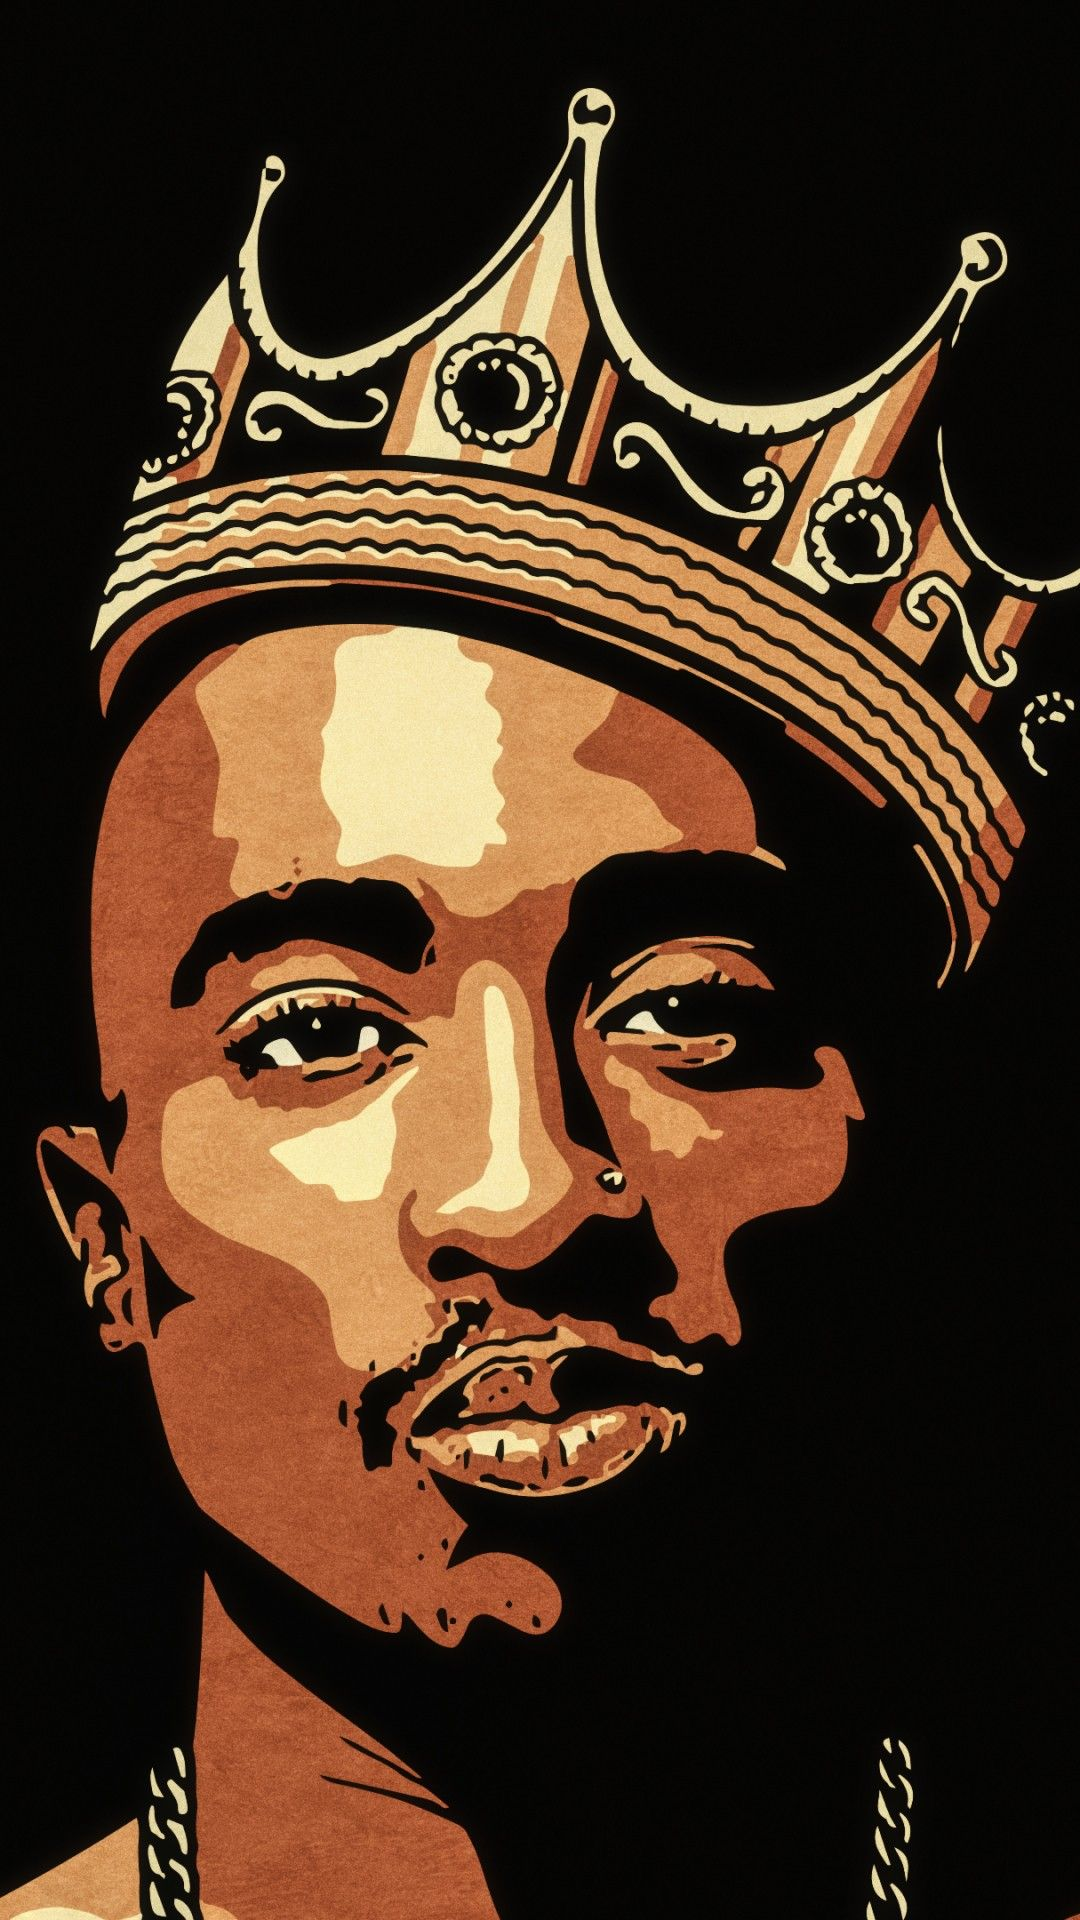 Wallpaper Phone 2Pac Full HD Tupac art, Pop art wallpaper